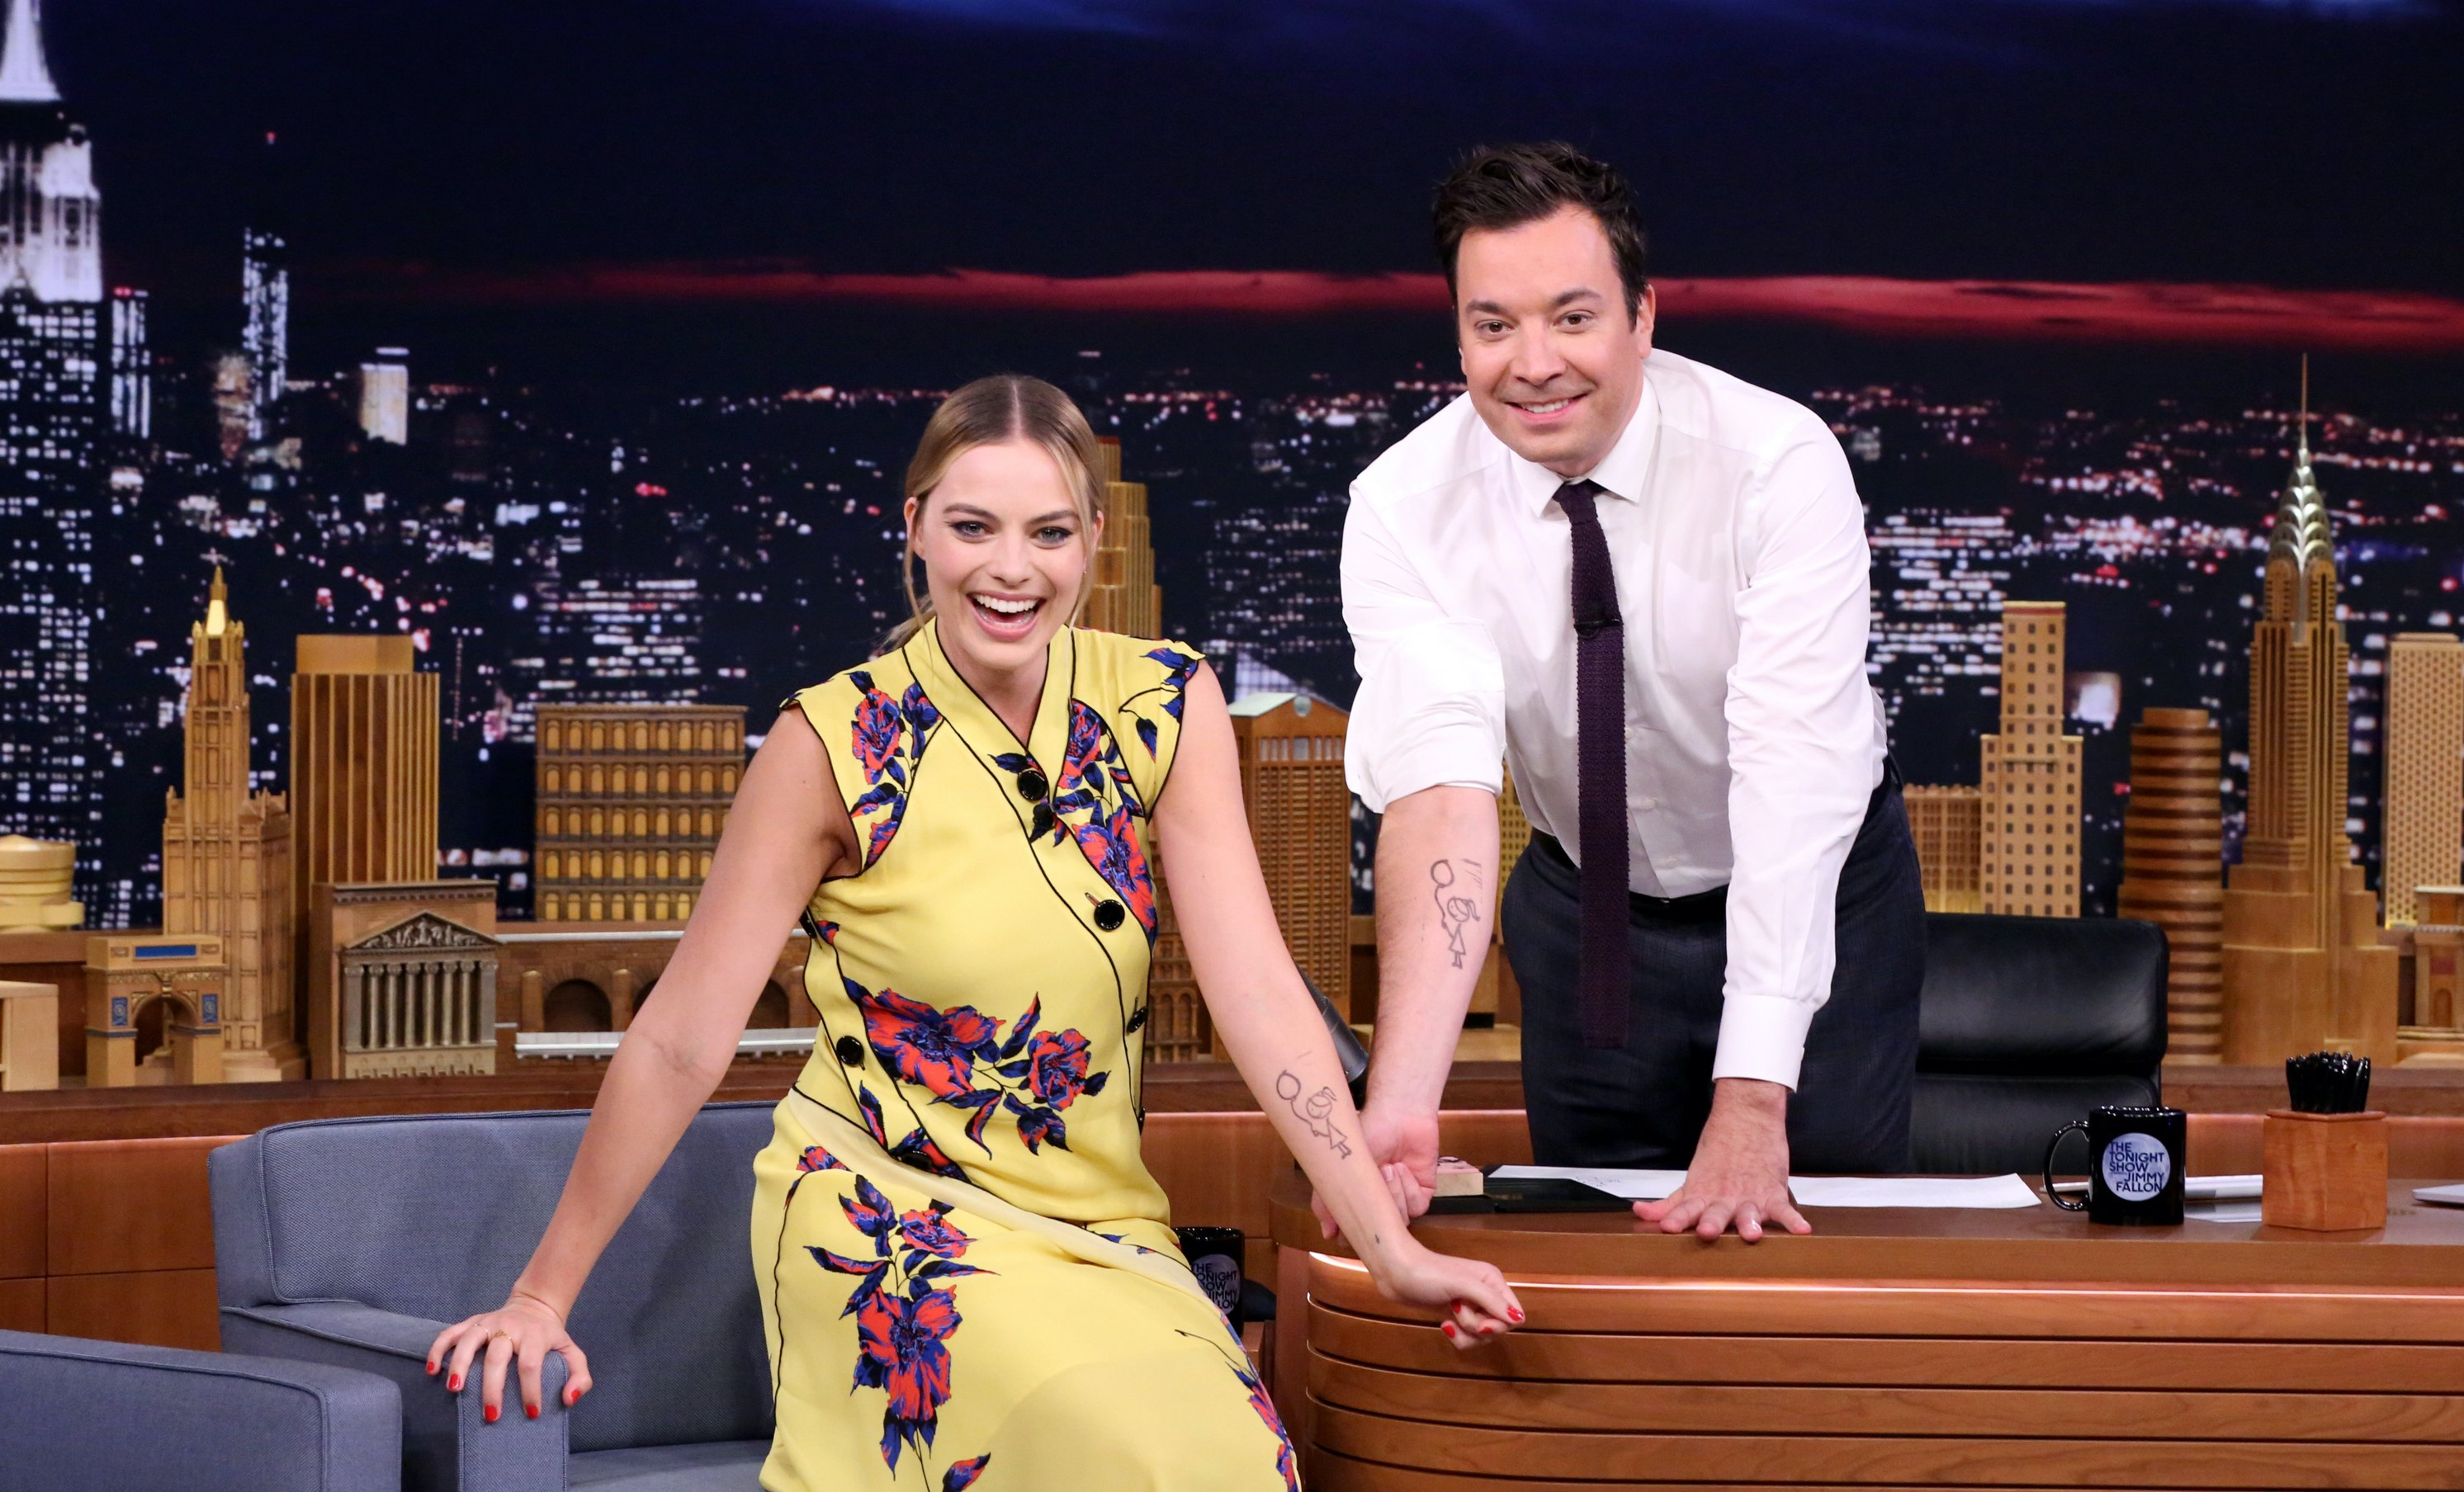 Image Credit: Getty Images / Actress Margot Robbie during an interview with host Jimmy Fallon on September 29, 2016.